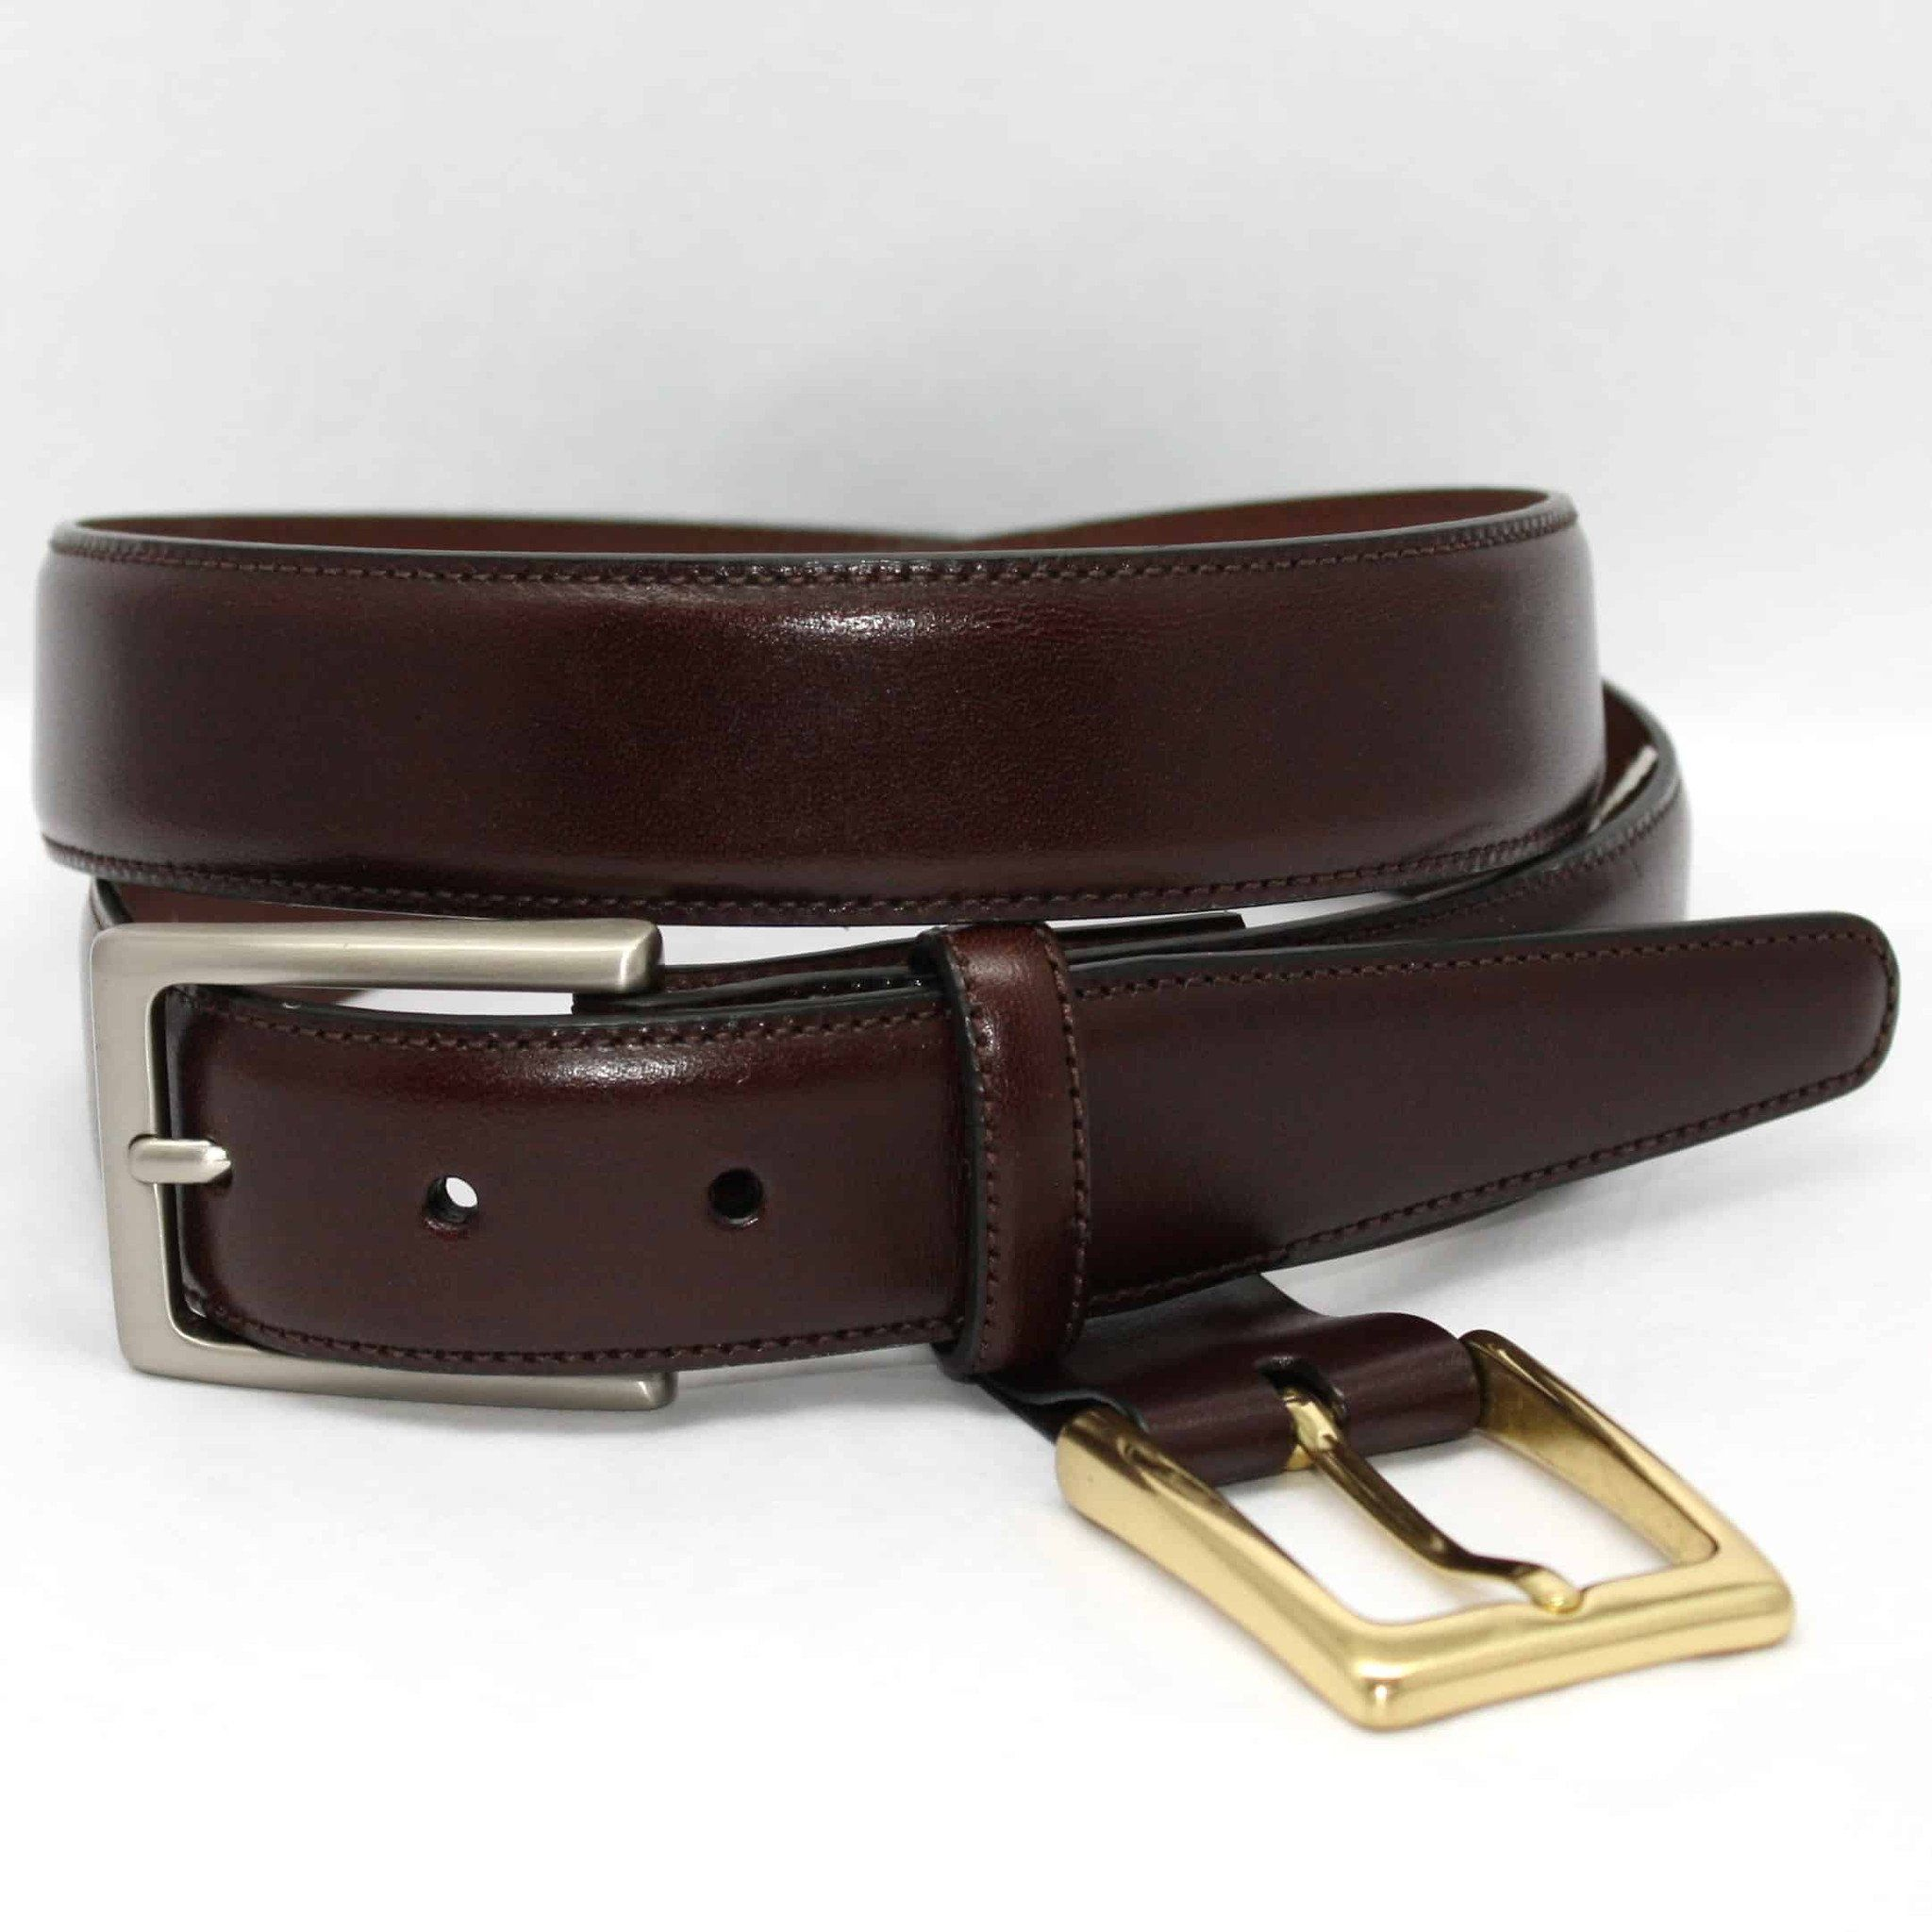 Glazed Kipskin Double Buckle Option Belt - Burgundy (Cordovan),BELT,GentRow.com, | GentRow.com